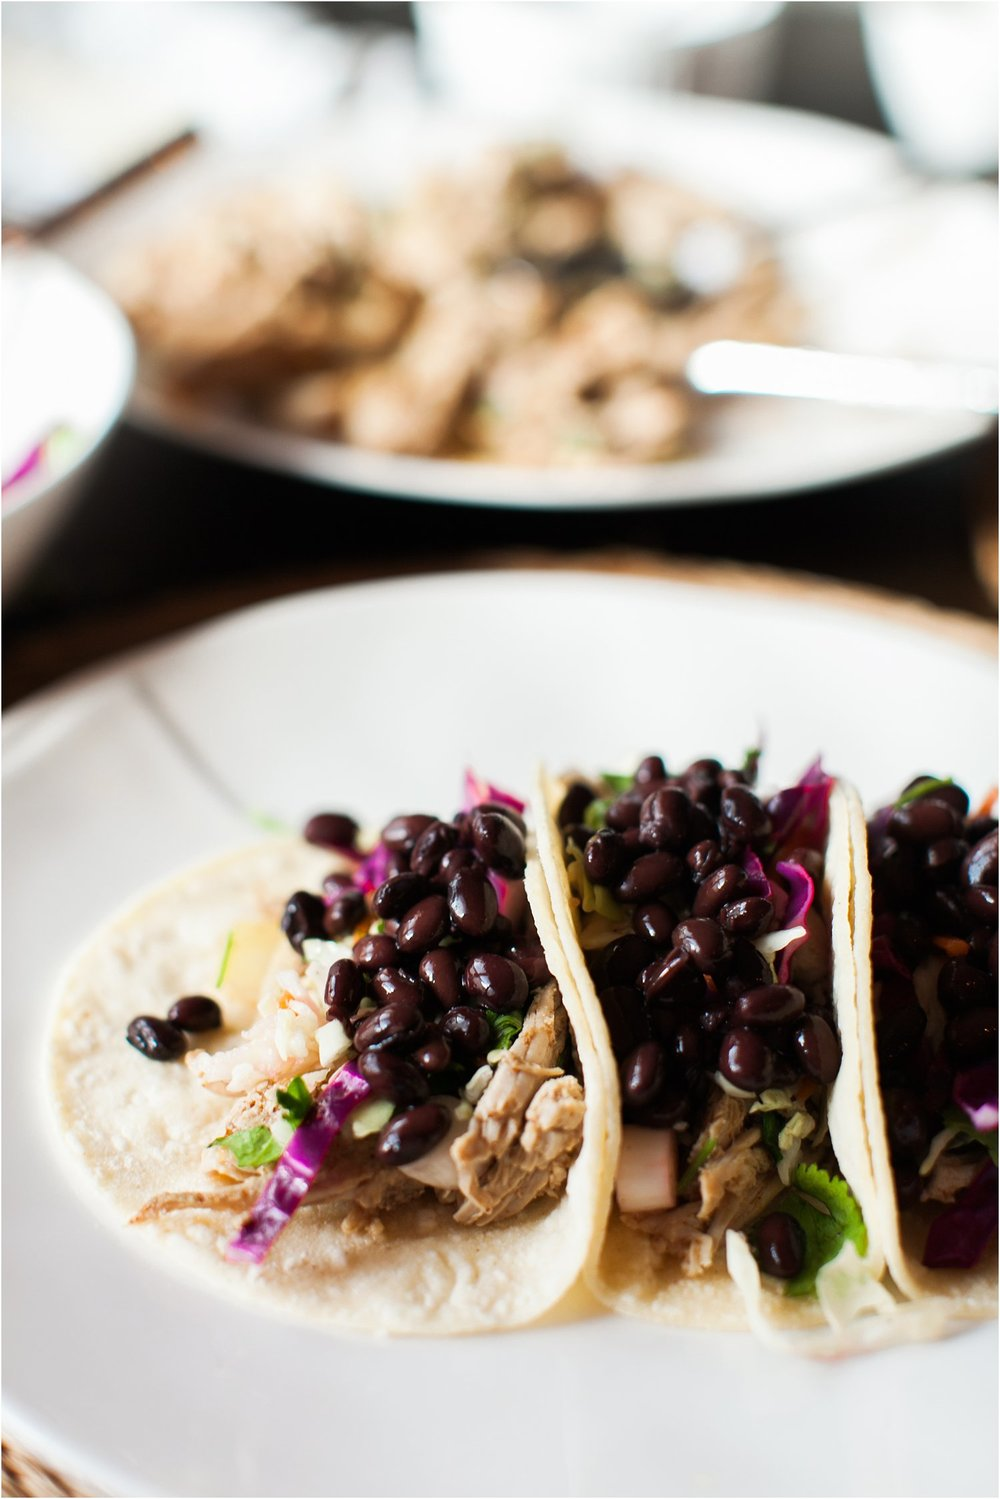 Slow Cooker Shredded Pork Tacos with Cilantro Lime Coleslaw | Feast & Dwell